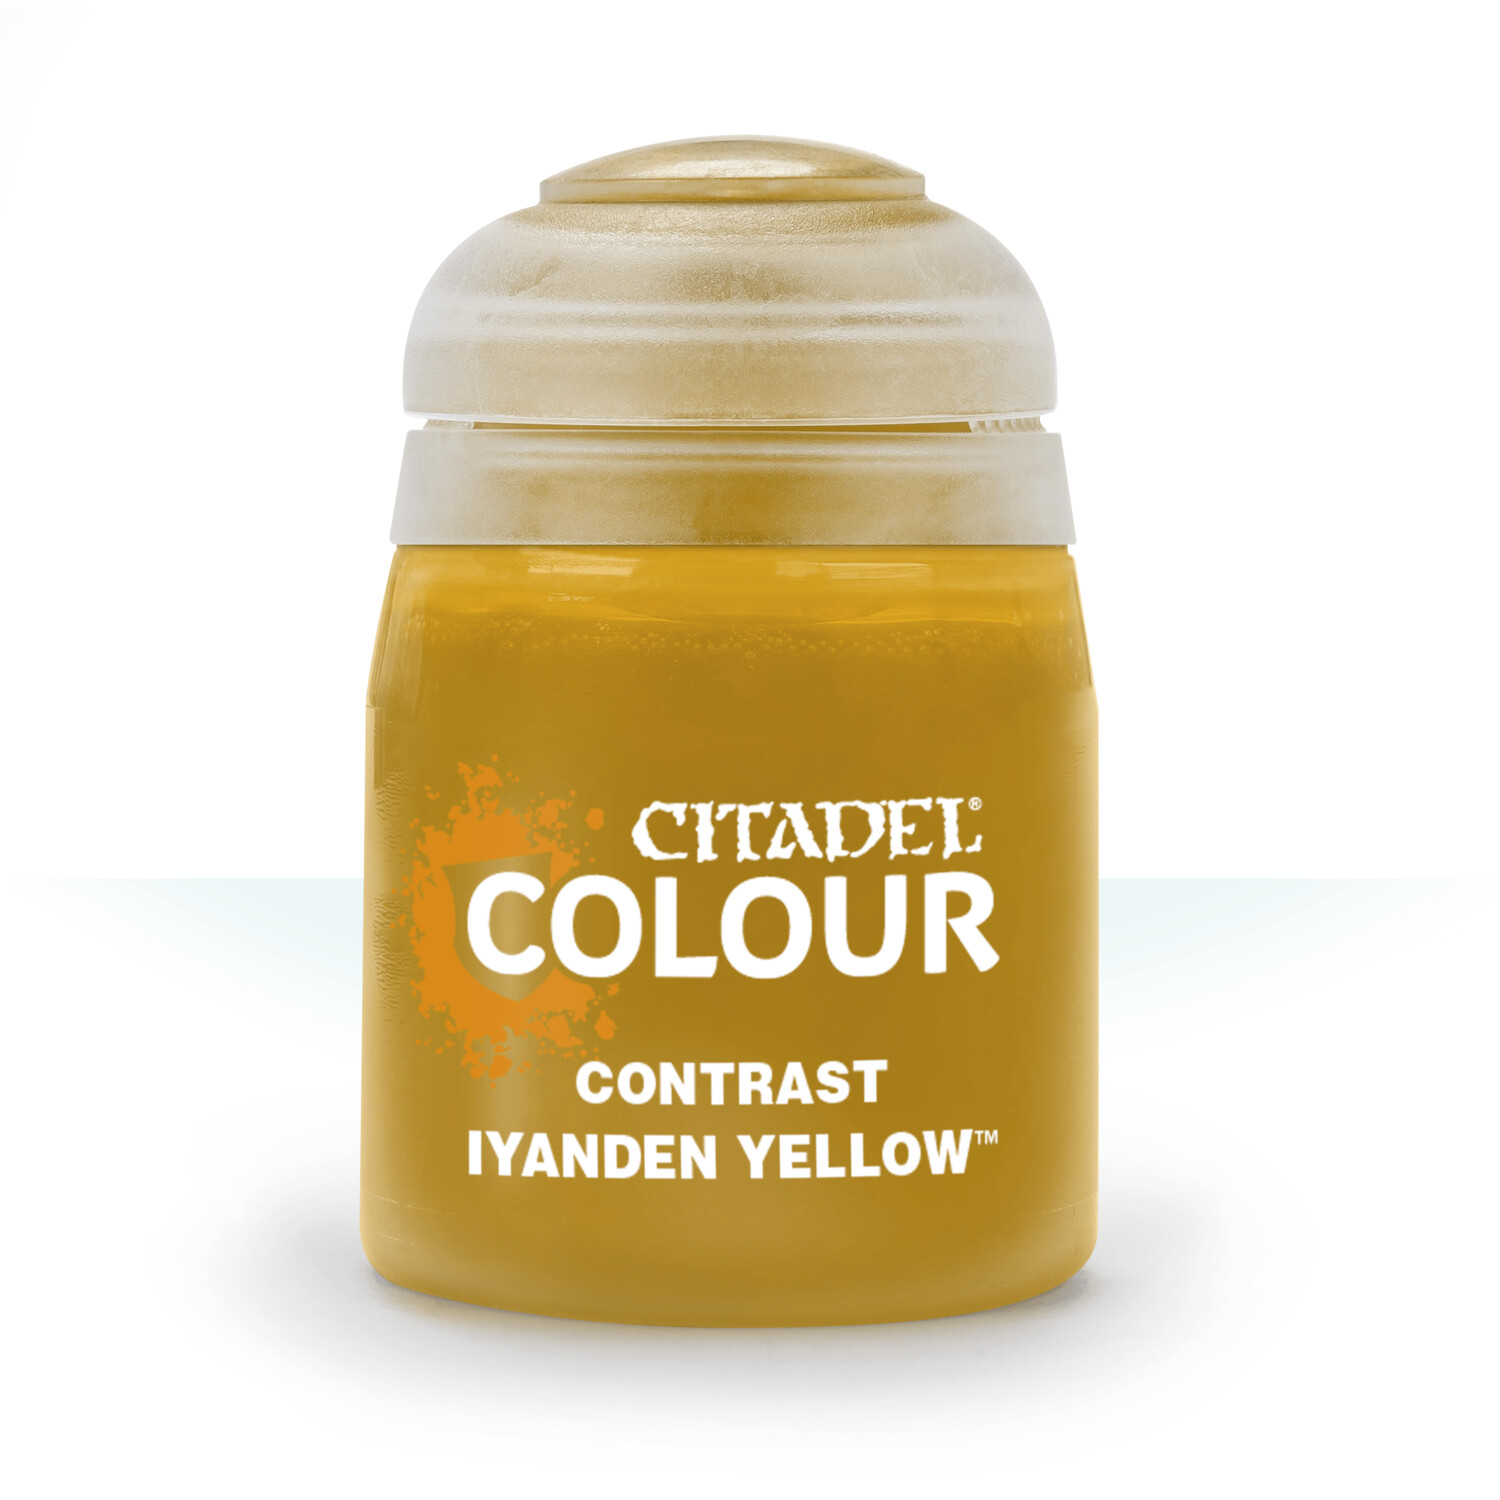 Citadel Colour - Contrast - Iyanden Yellow